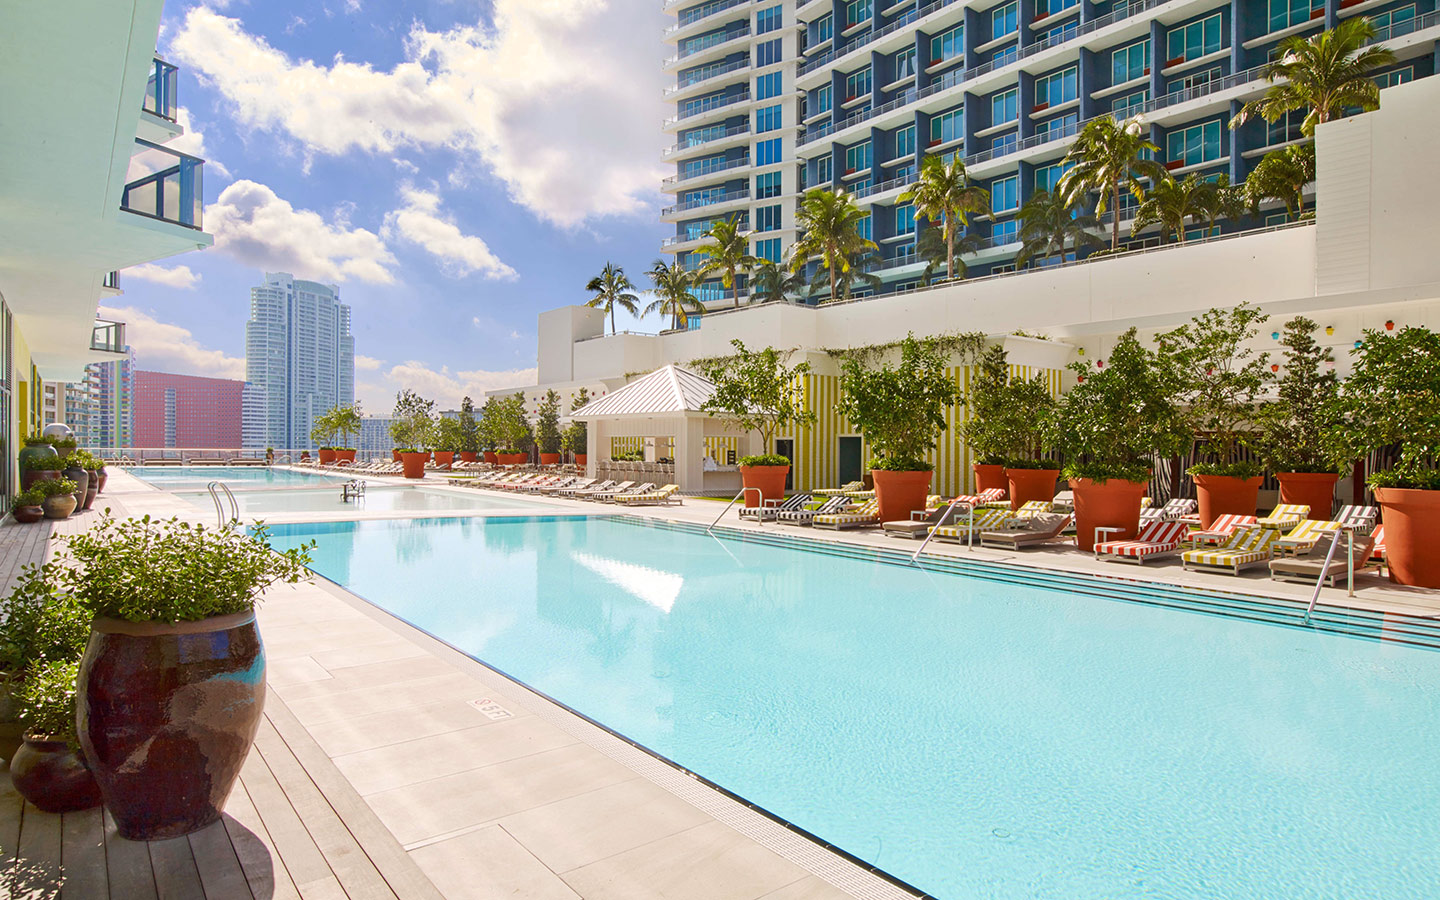 Pool at SLS Brickell